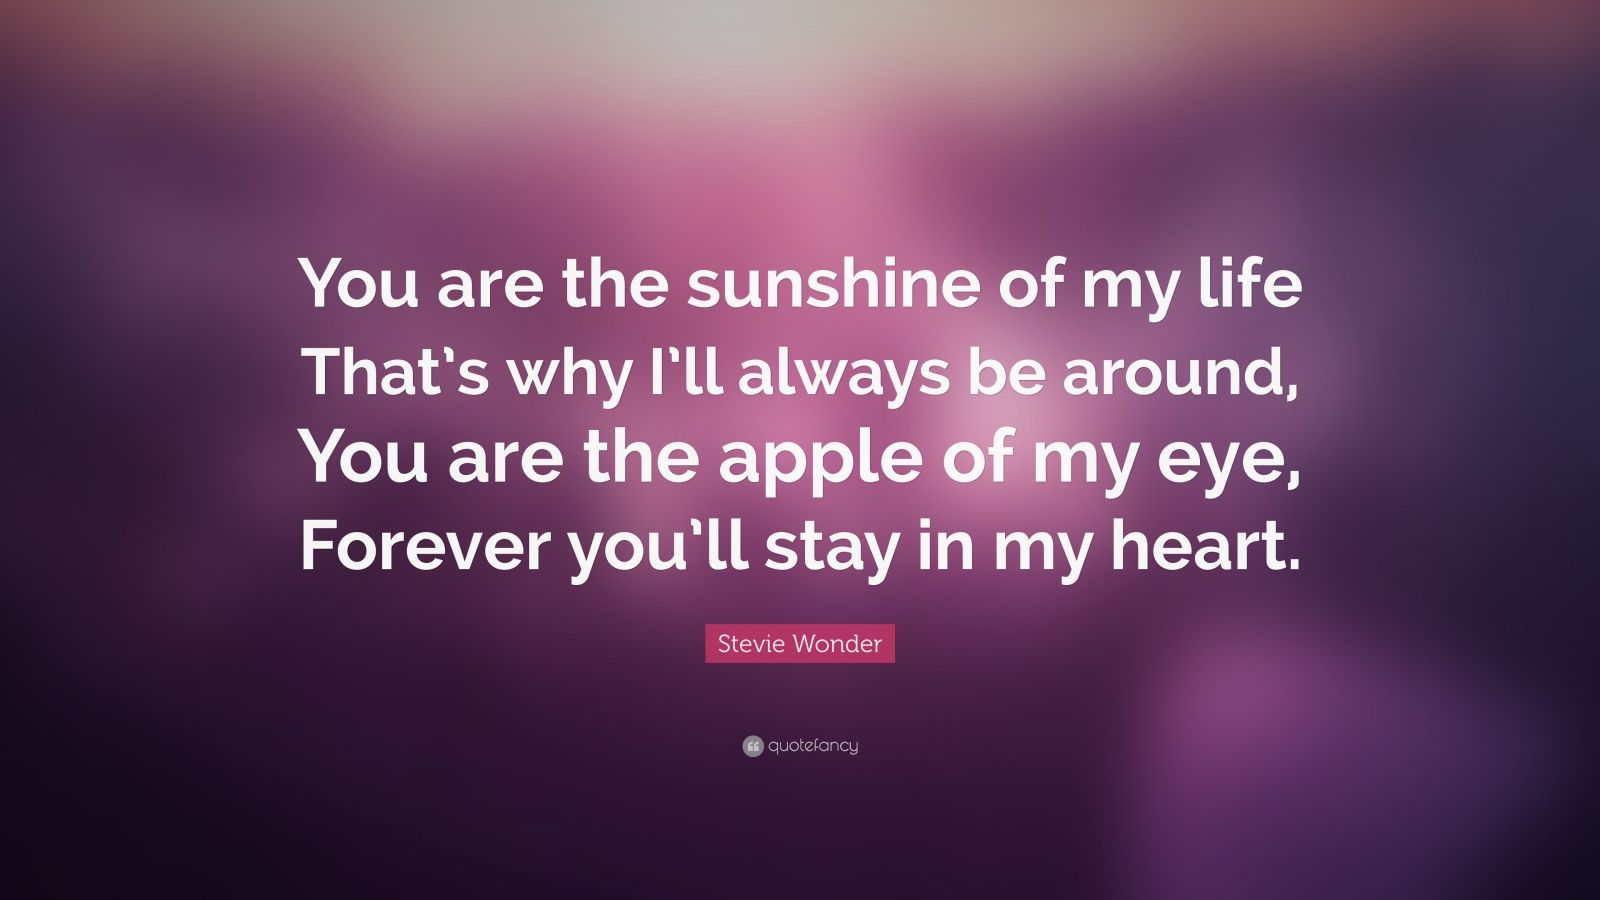 Stevie Wonder Quote: \u201cYou are the sunshine of my life That